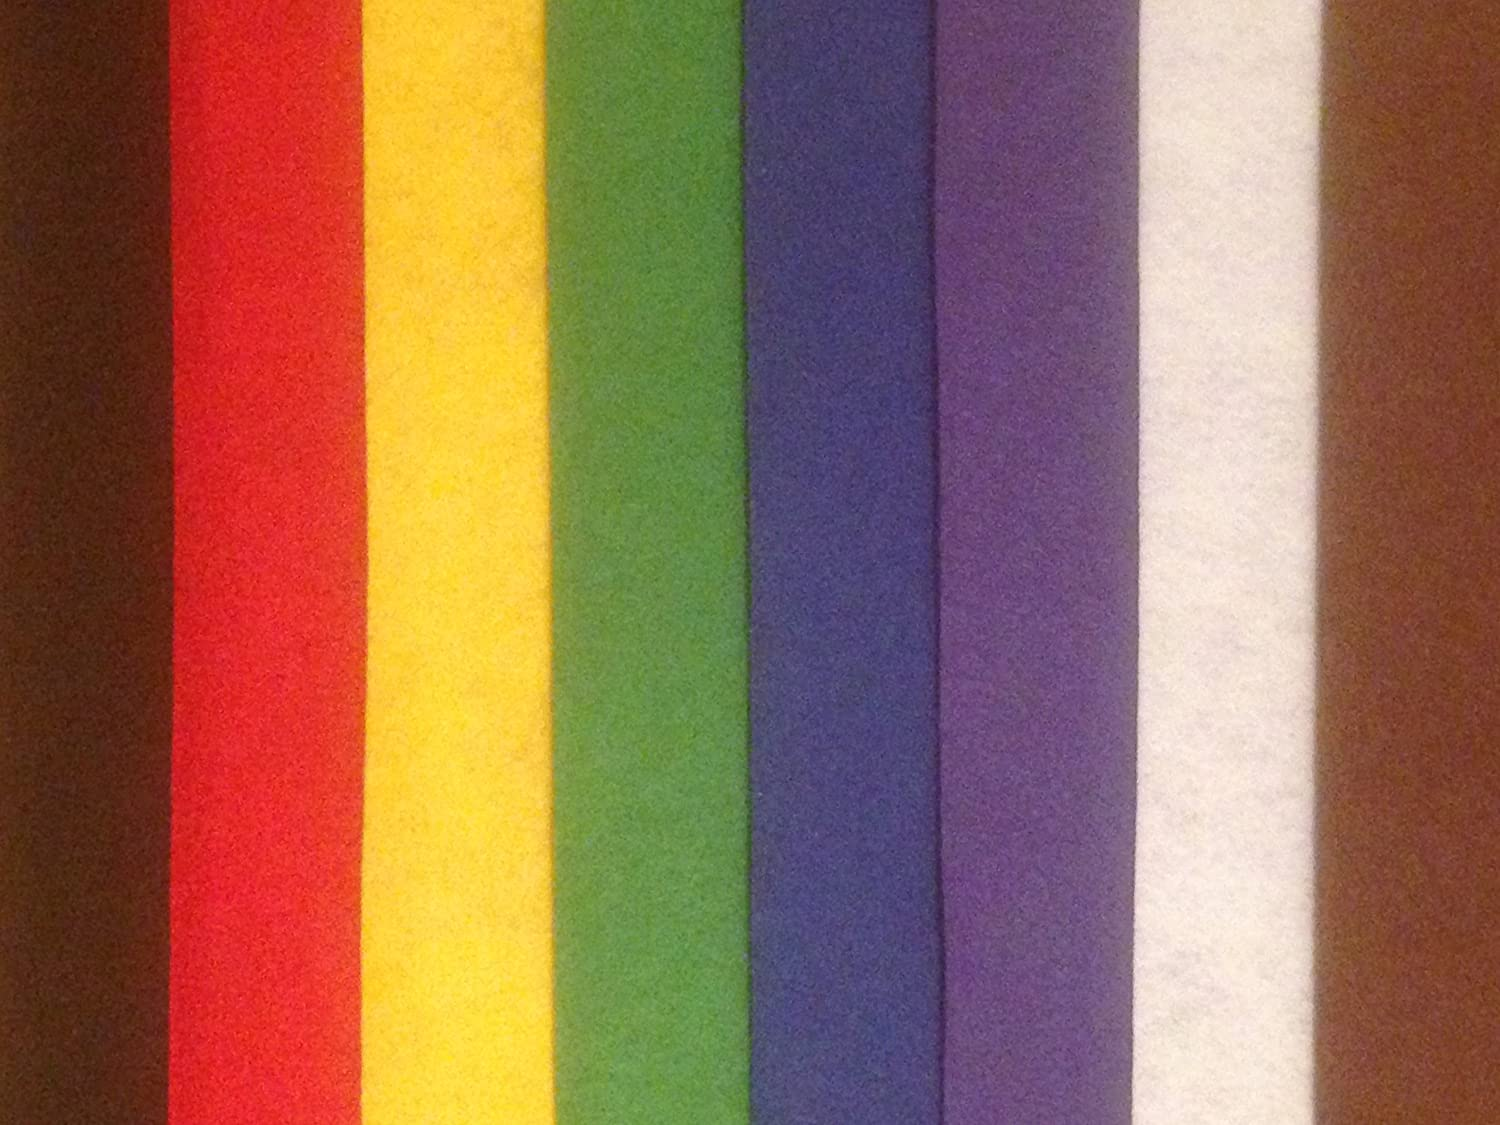 16 x A4 Felt Sheets 2 of each Red, Yellow, Green, Blue, Purple, Black, Brown and White, Supplied By Kids B Crafty .